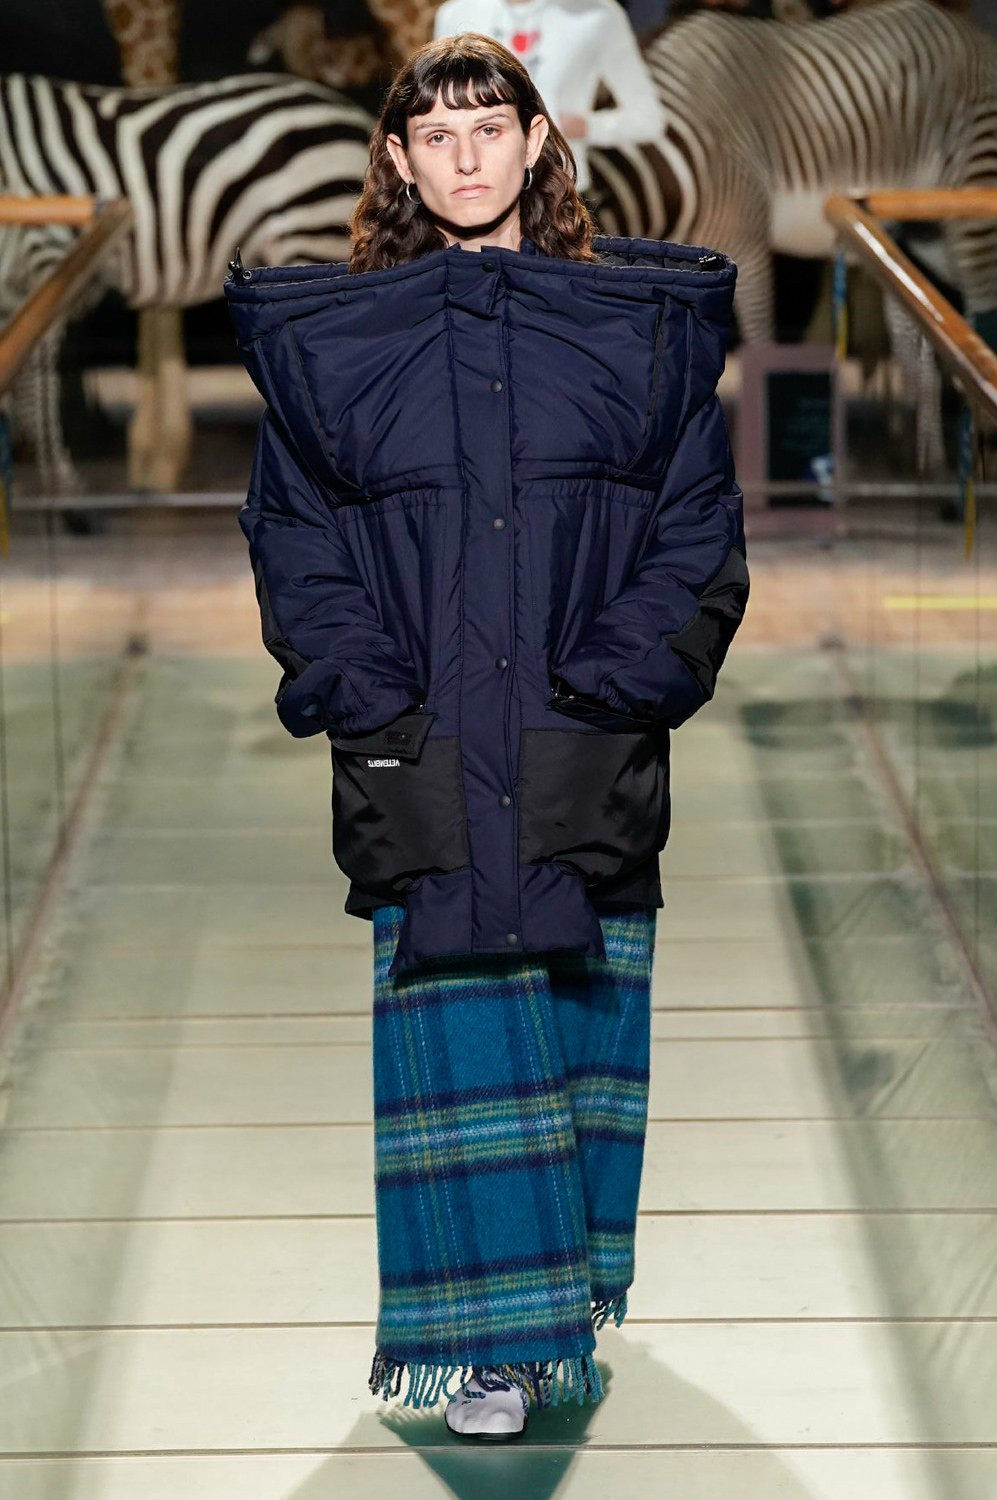 https---vetements-aw19-dtf-magazine.com-image-2019-01-vetements-fall-winter-2019-paris-fashion-week-16